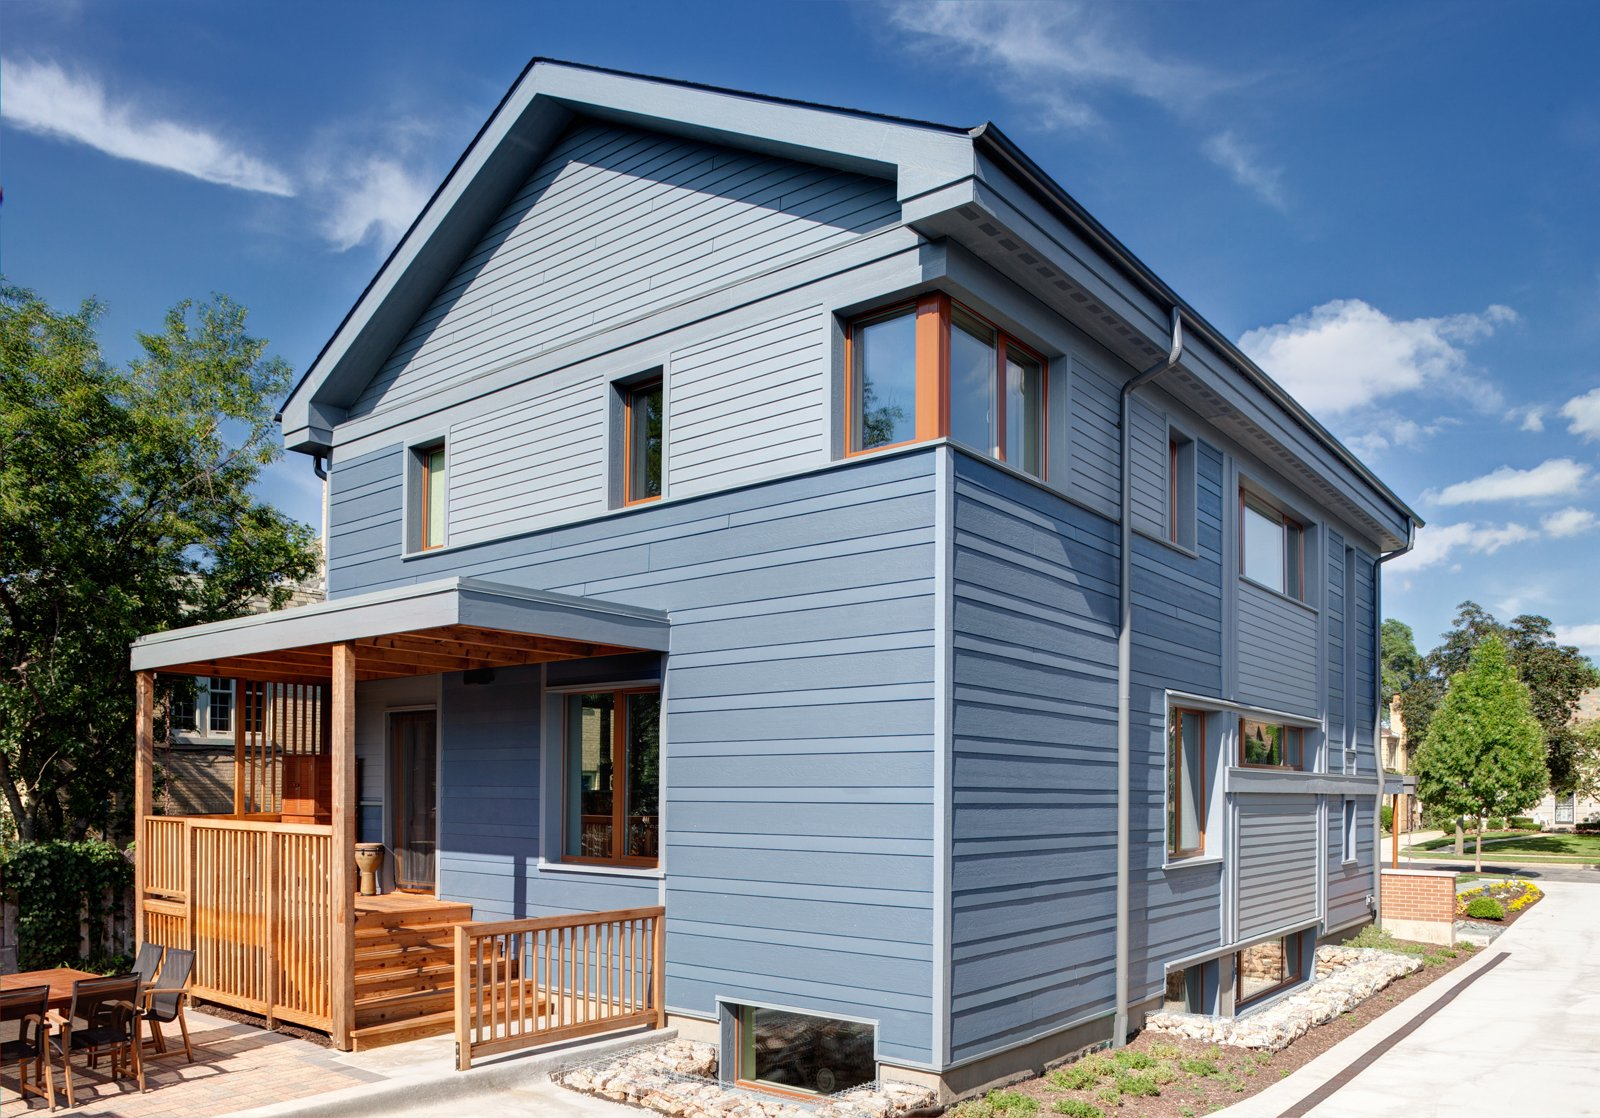 Sustainable Living: Chicago's First Certified Passive House